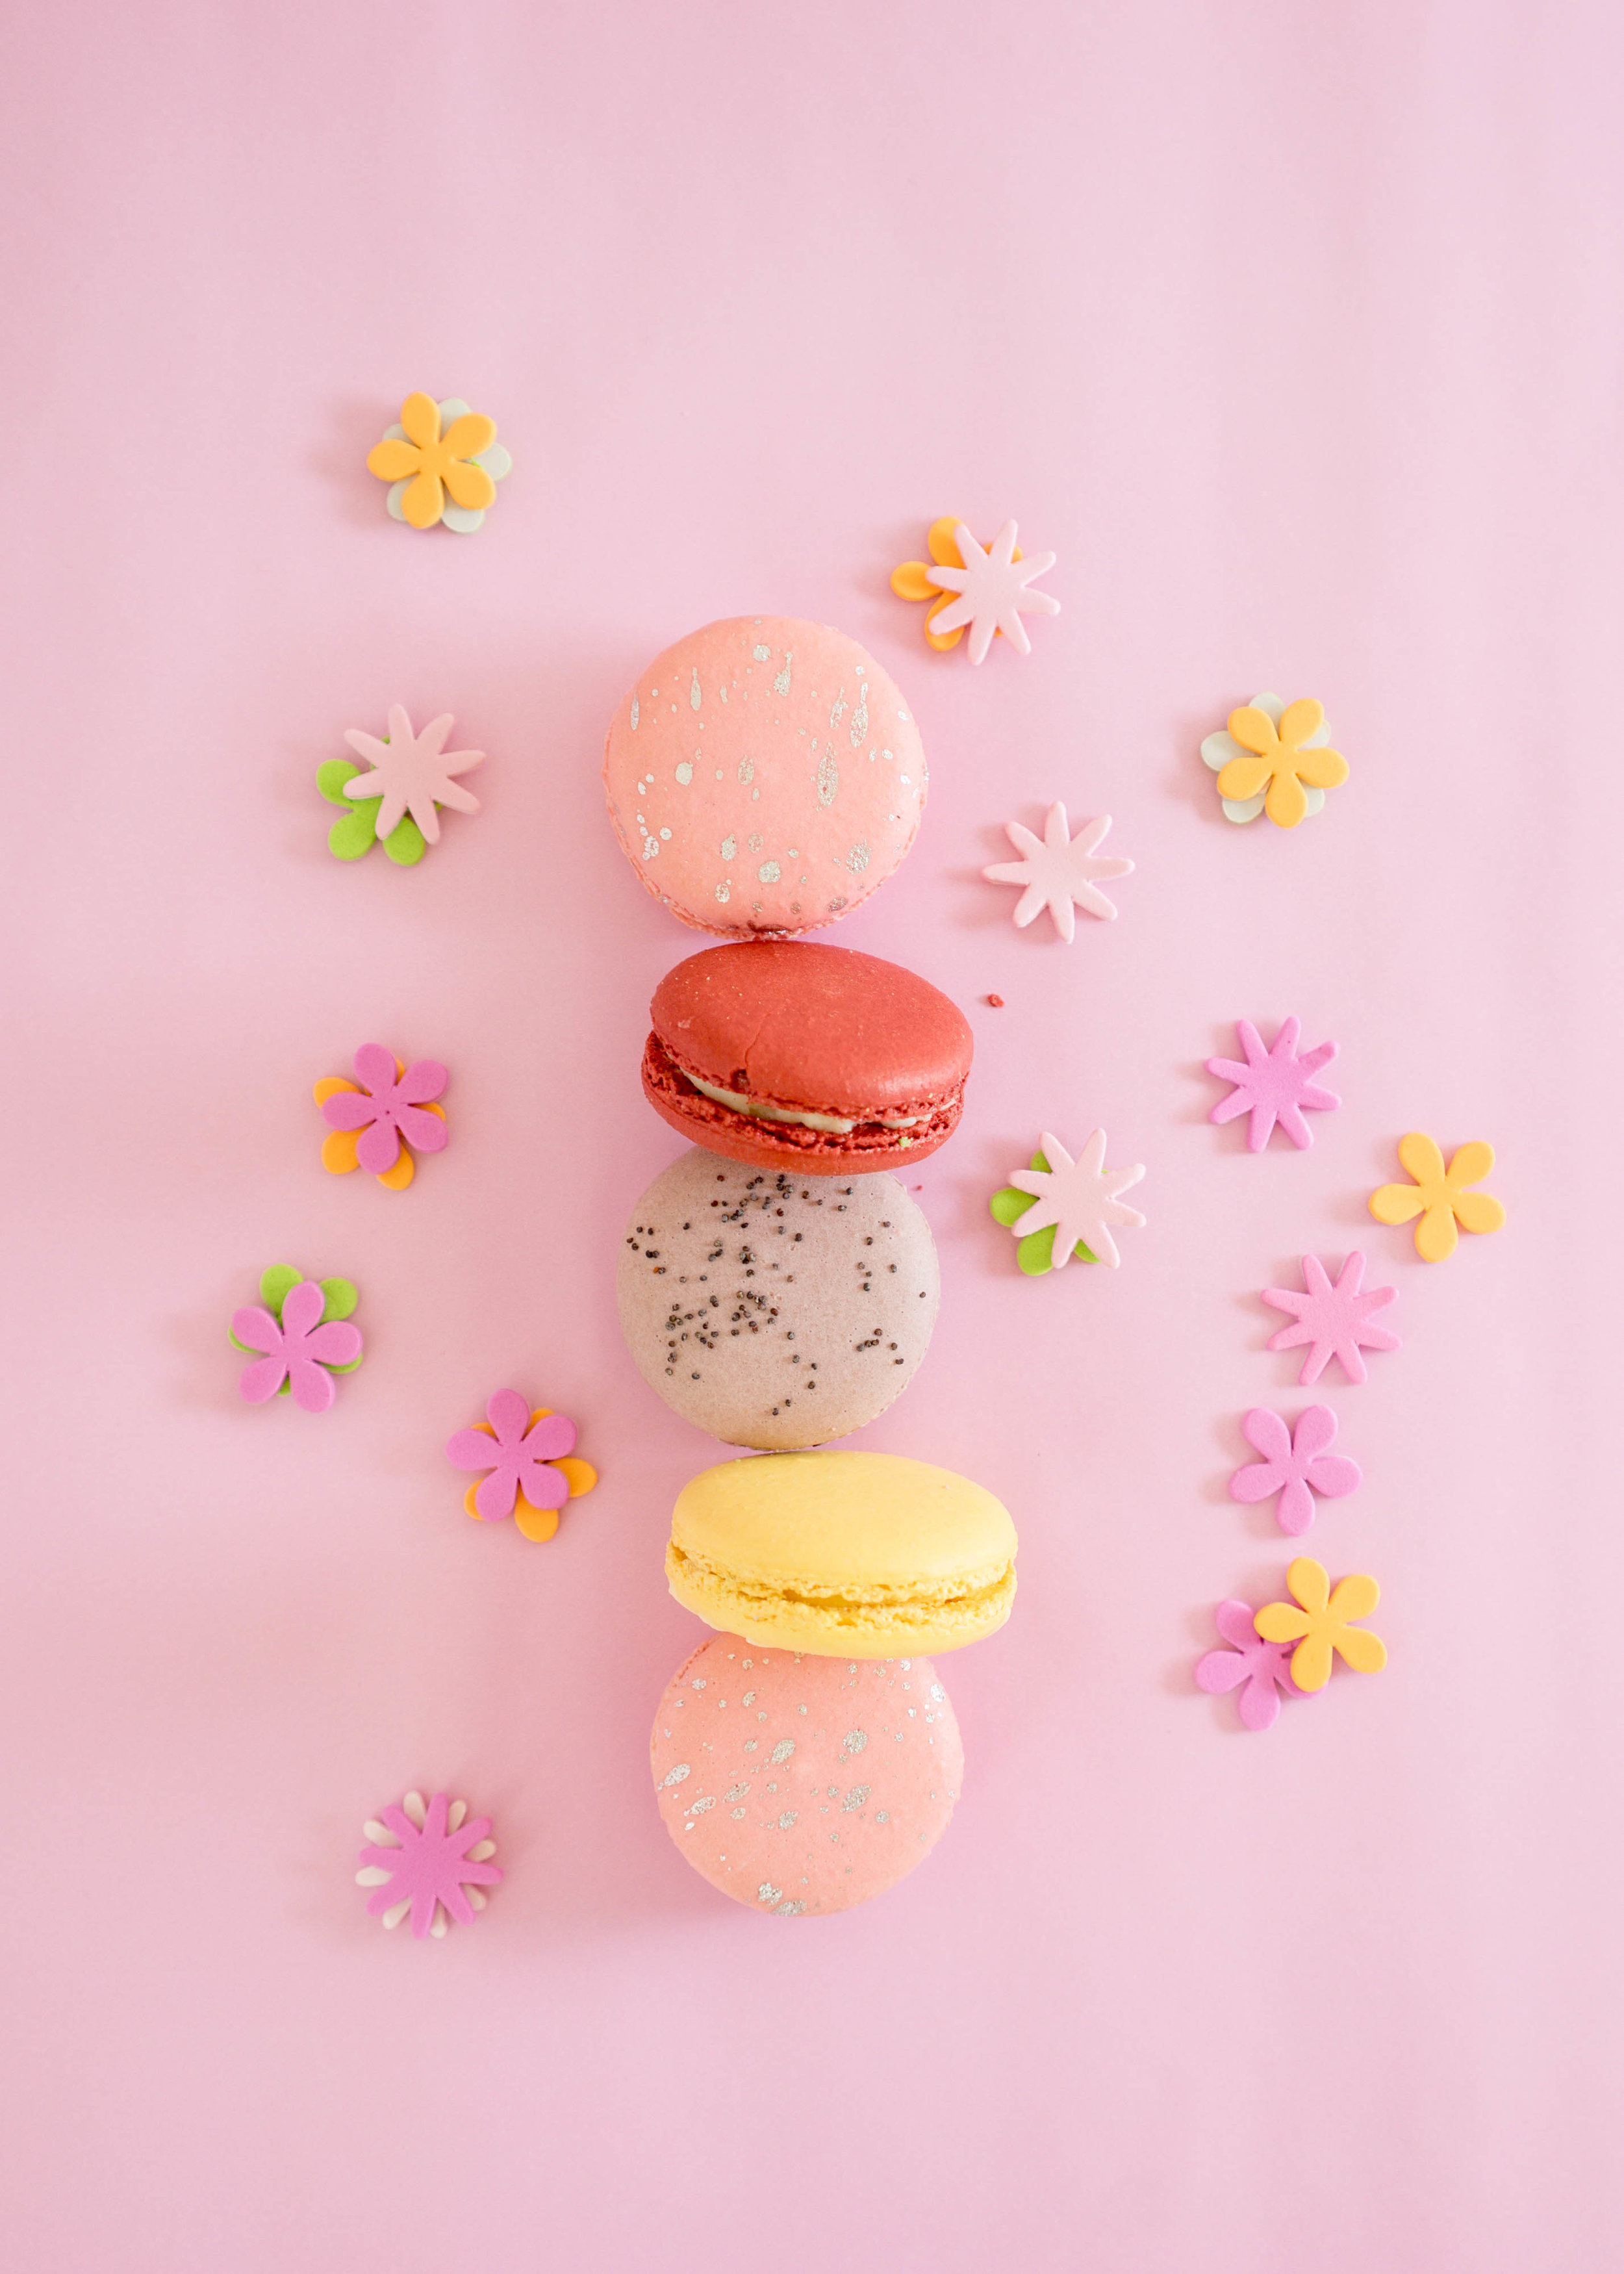 Image of Spring specials macarons.